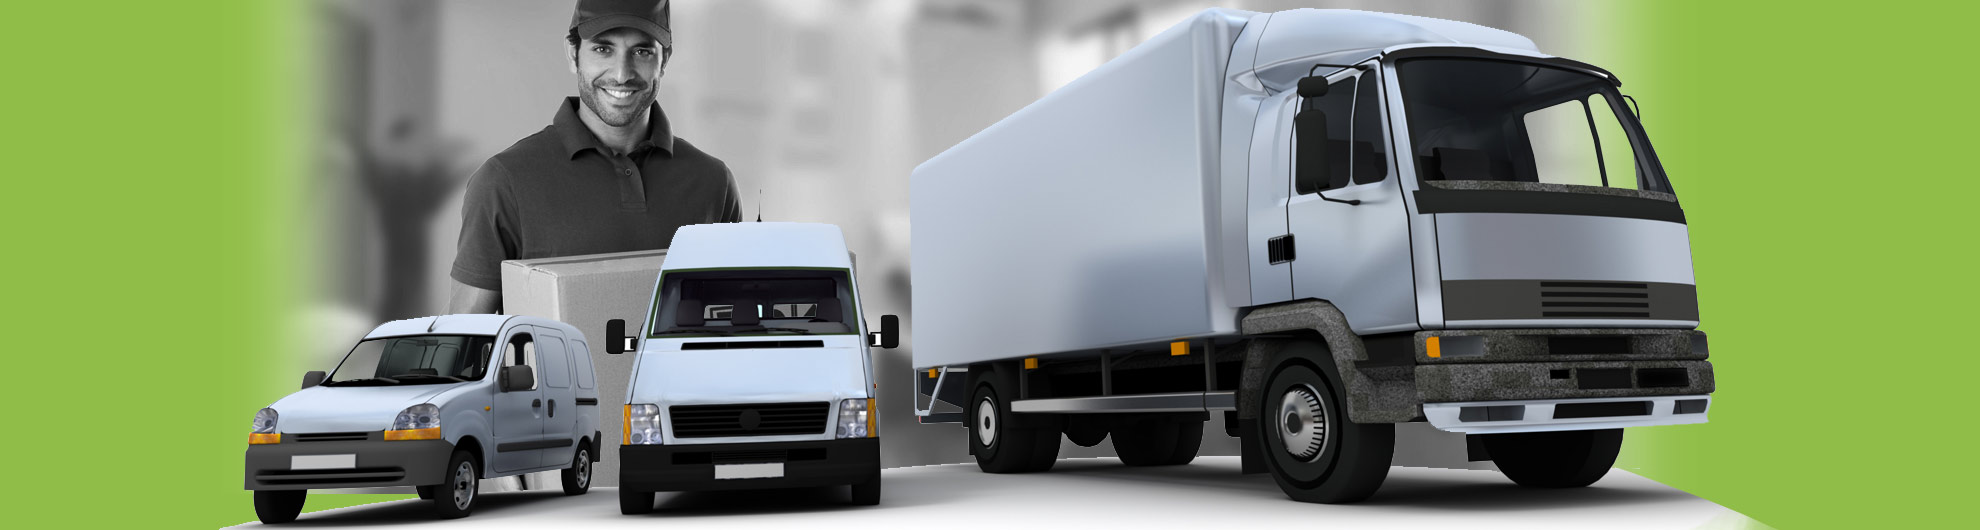 Celbridge  International Movers - Shipping Companies